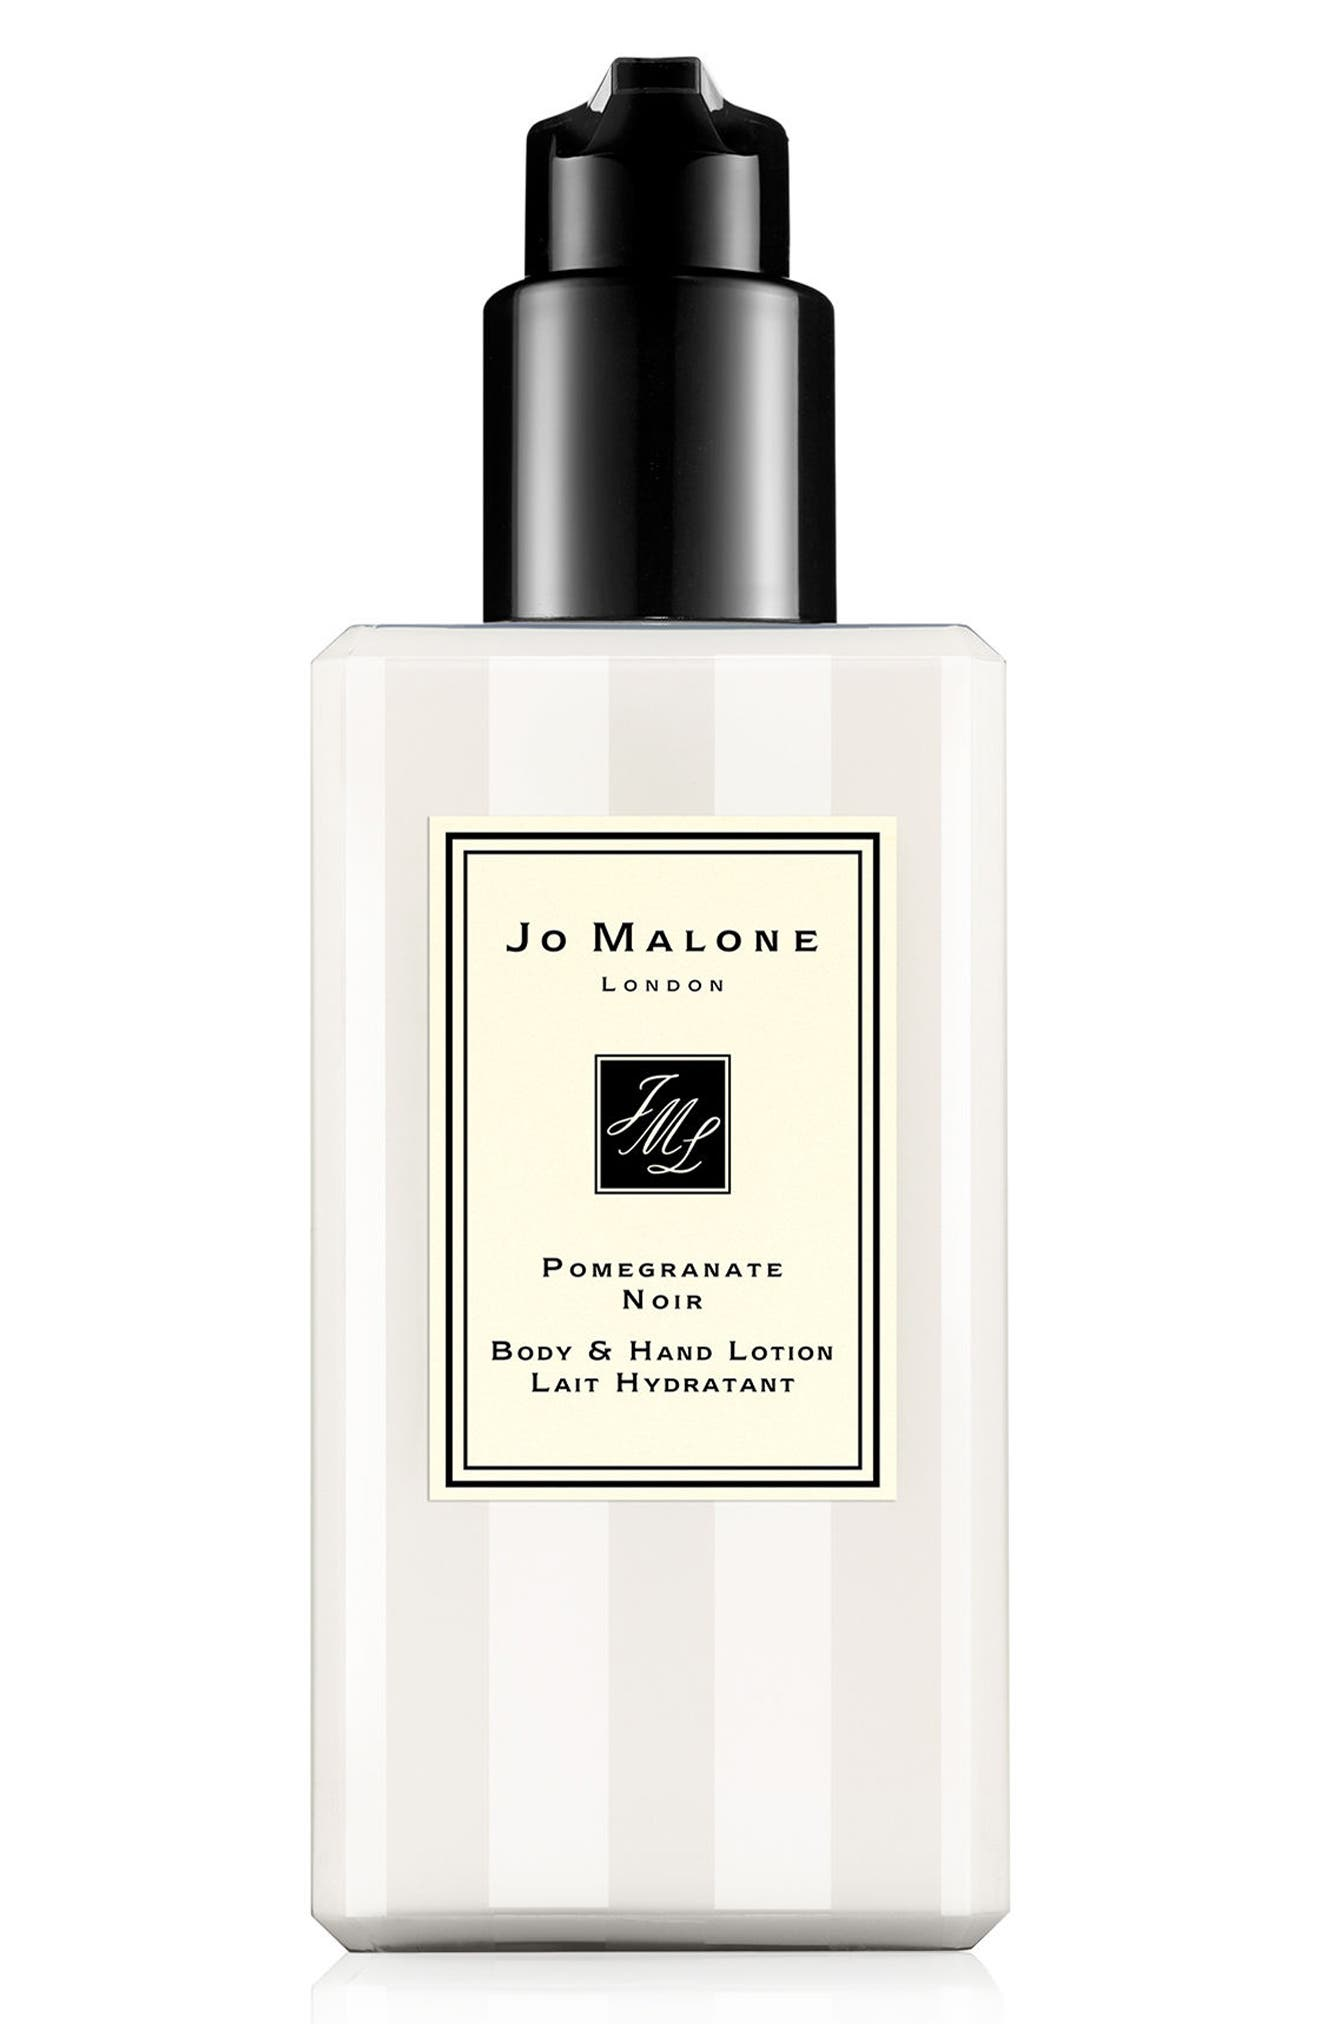 Jo Malone London™ 'Pomegranate Noir' Body Lotion